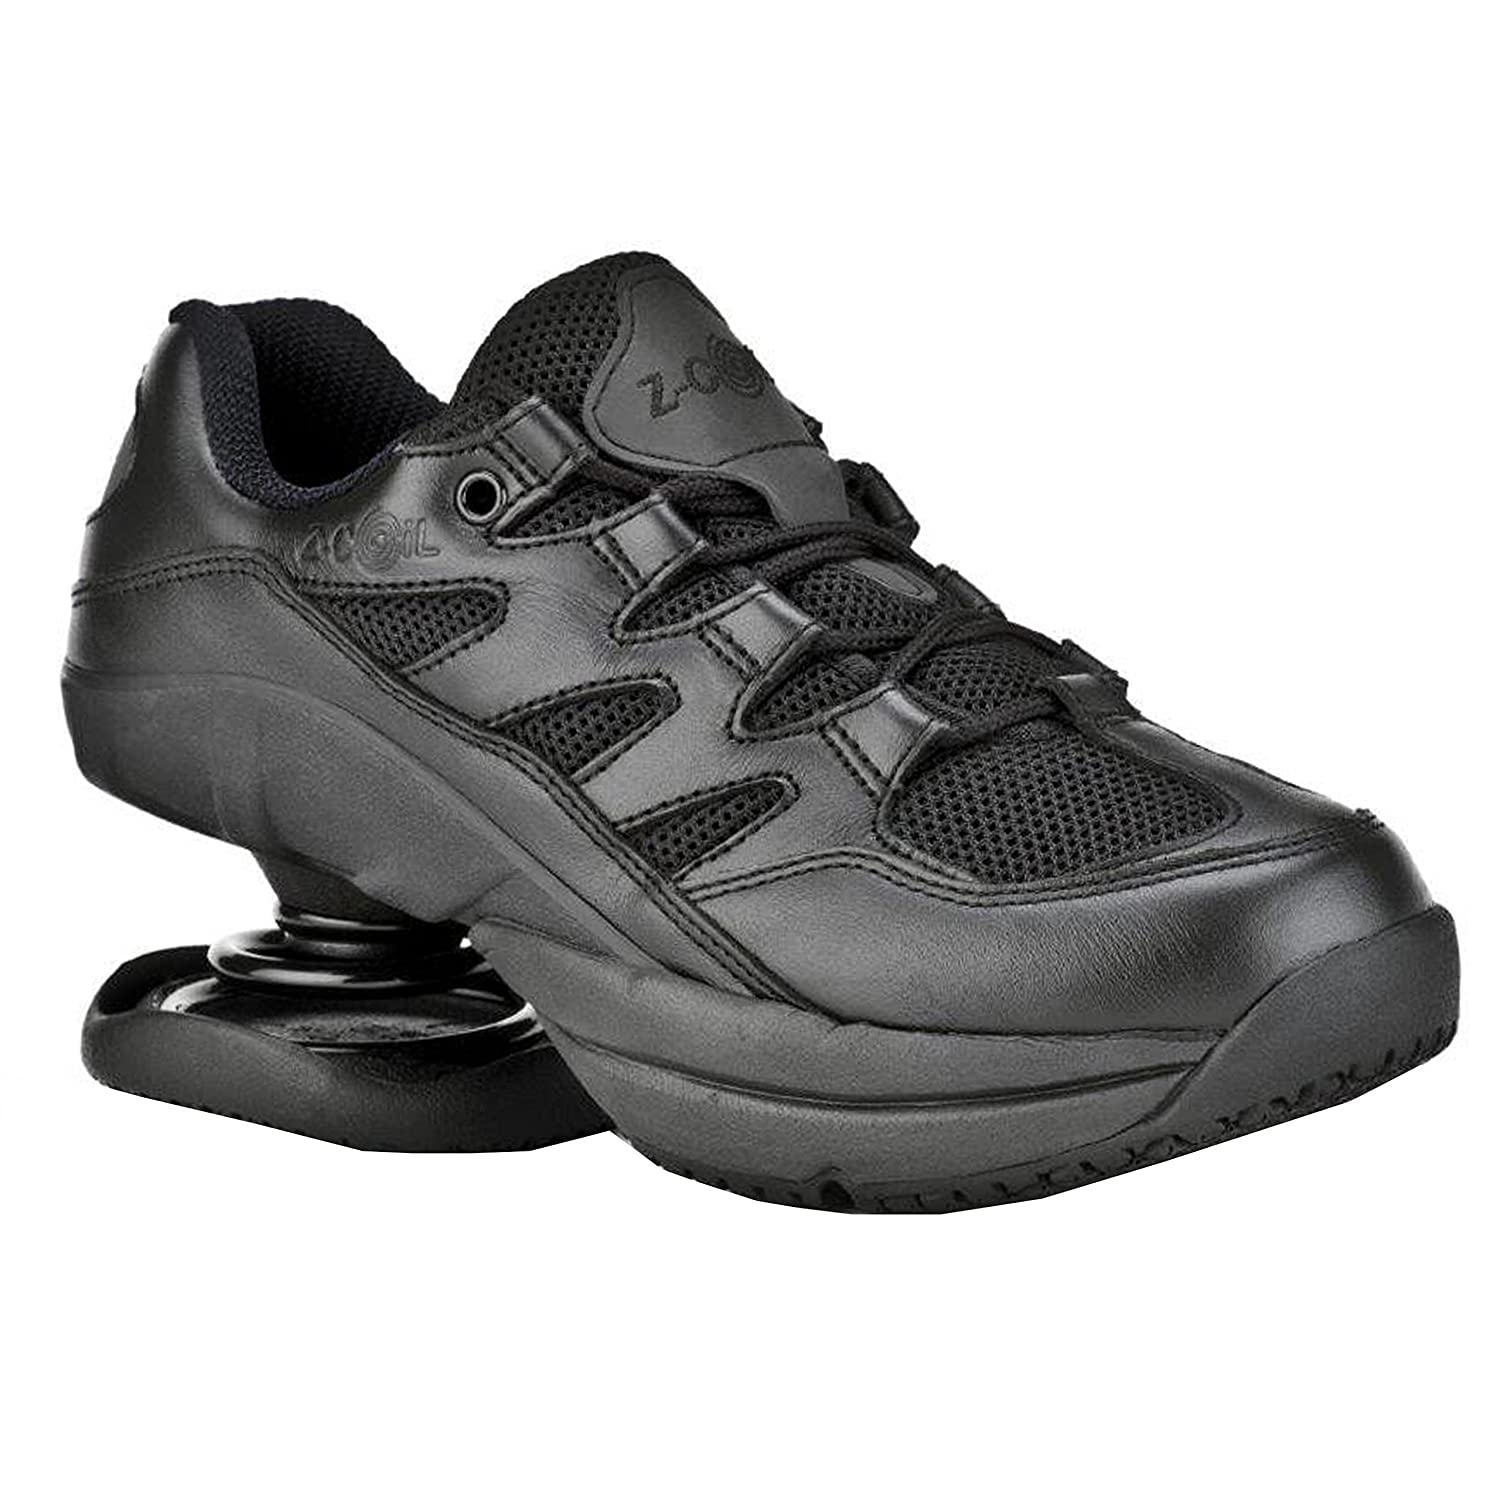 Z CoiL Pain Relief Footwear Women's Freedom Slip Resistant Black Leather Tennis Shoe